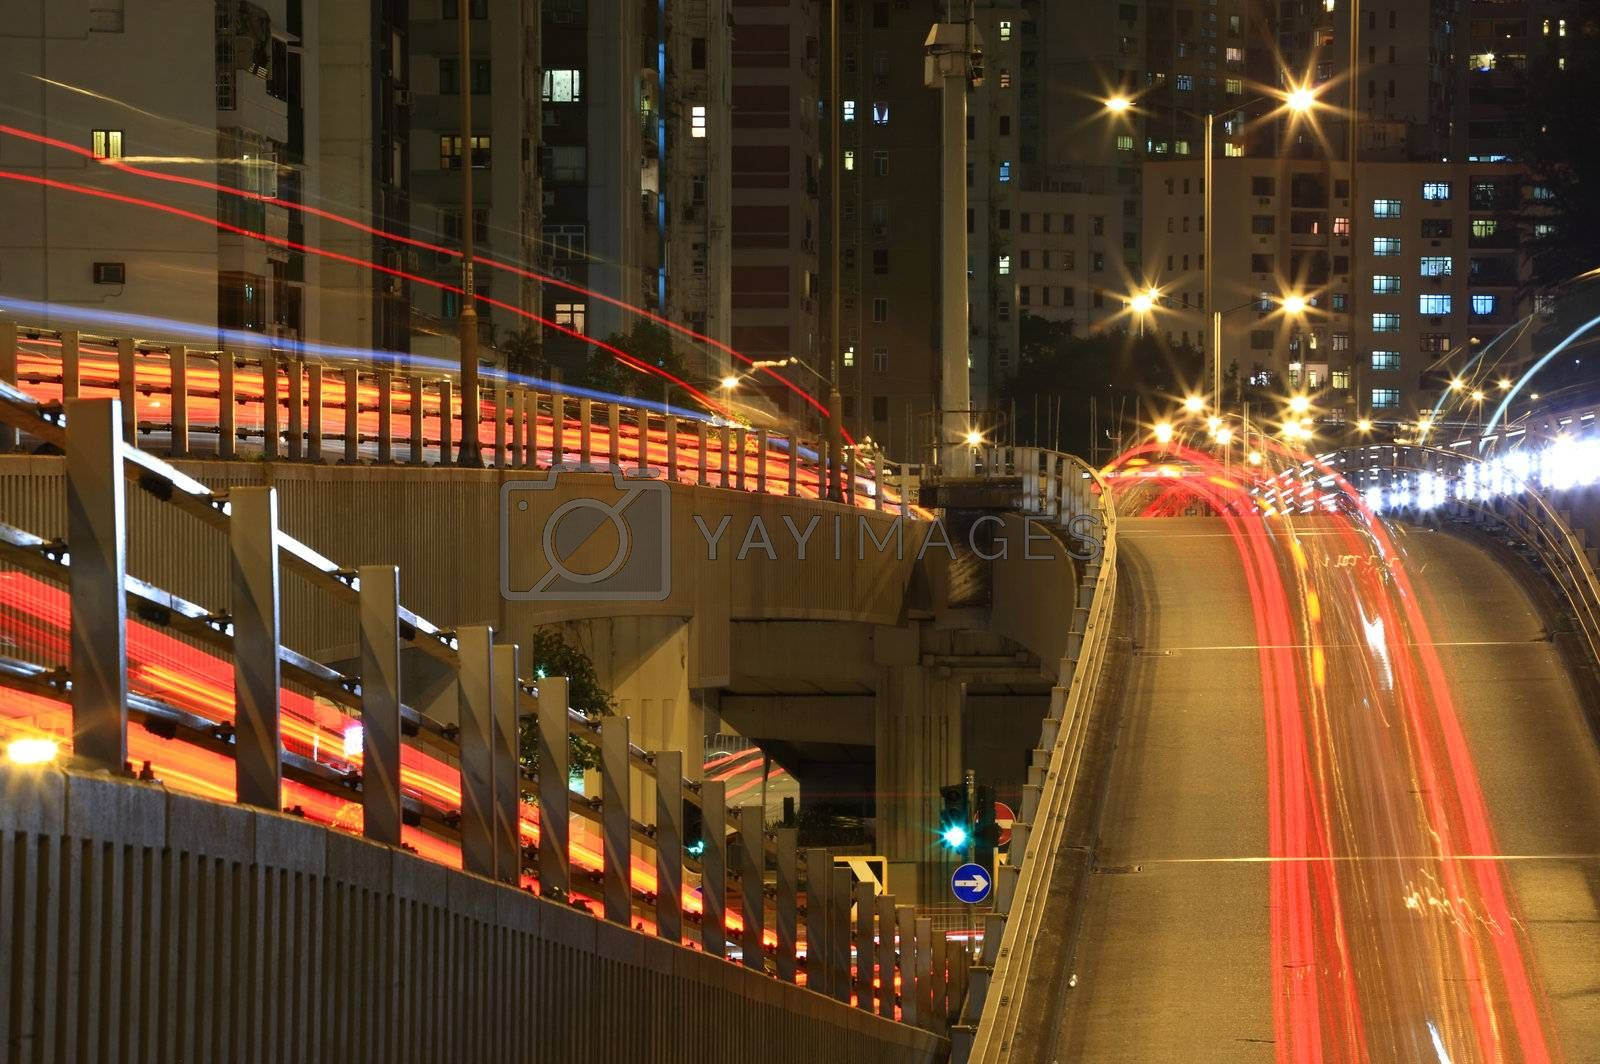 Hong Kong freeway system at night by leungchopan